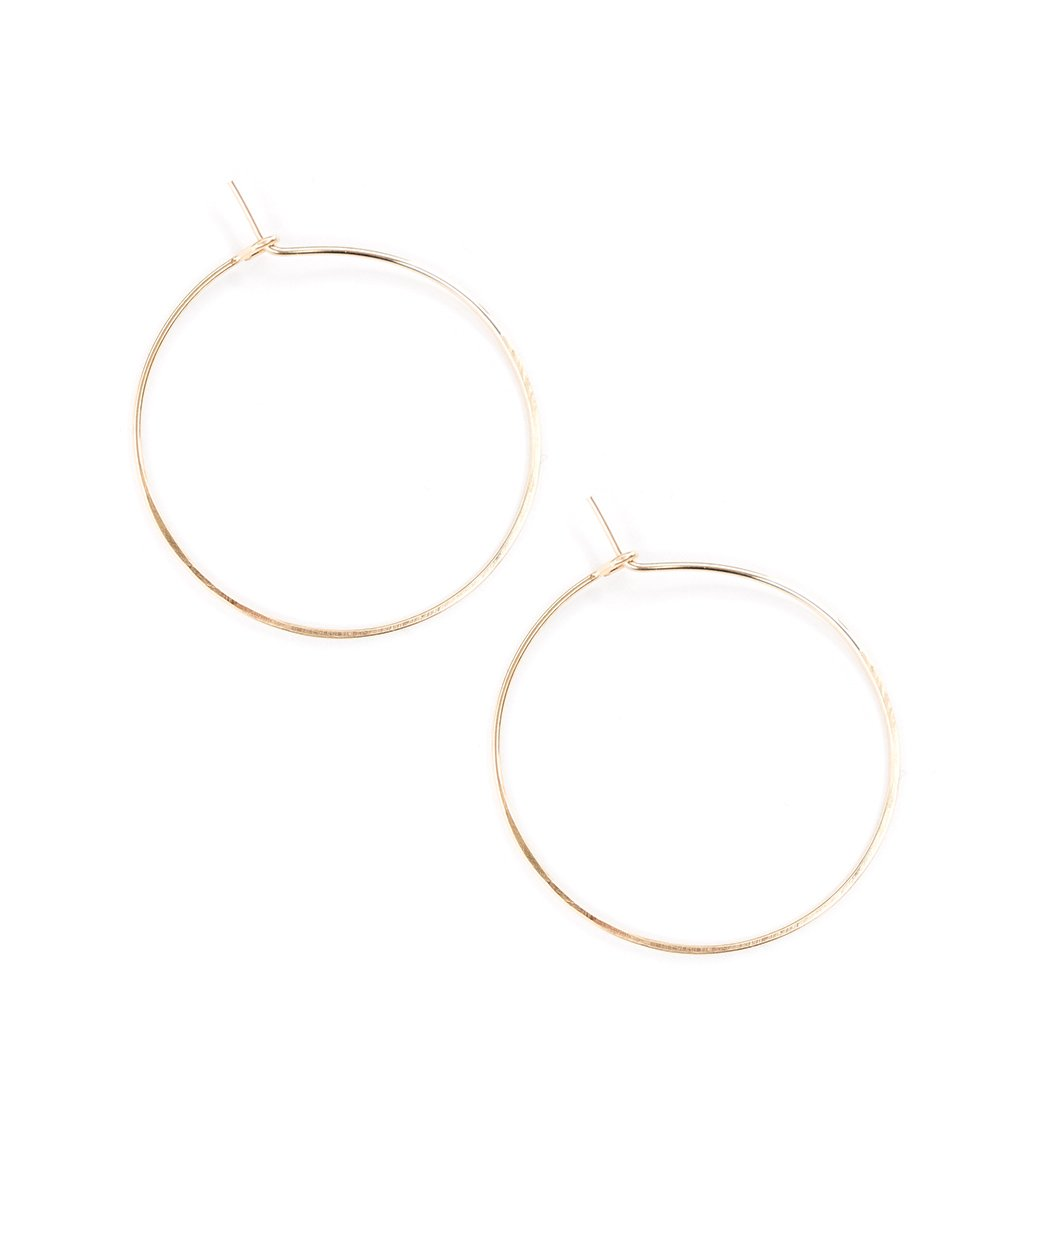 E Featherweight Hoop Small Gold 1 3